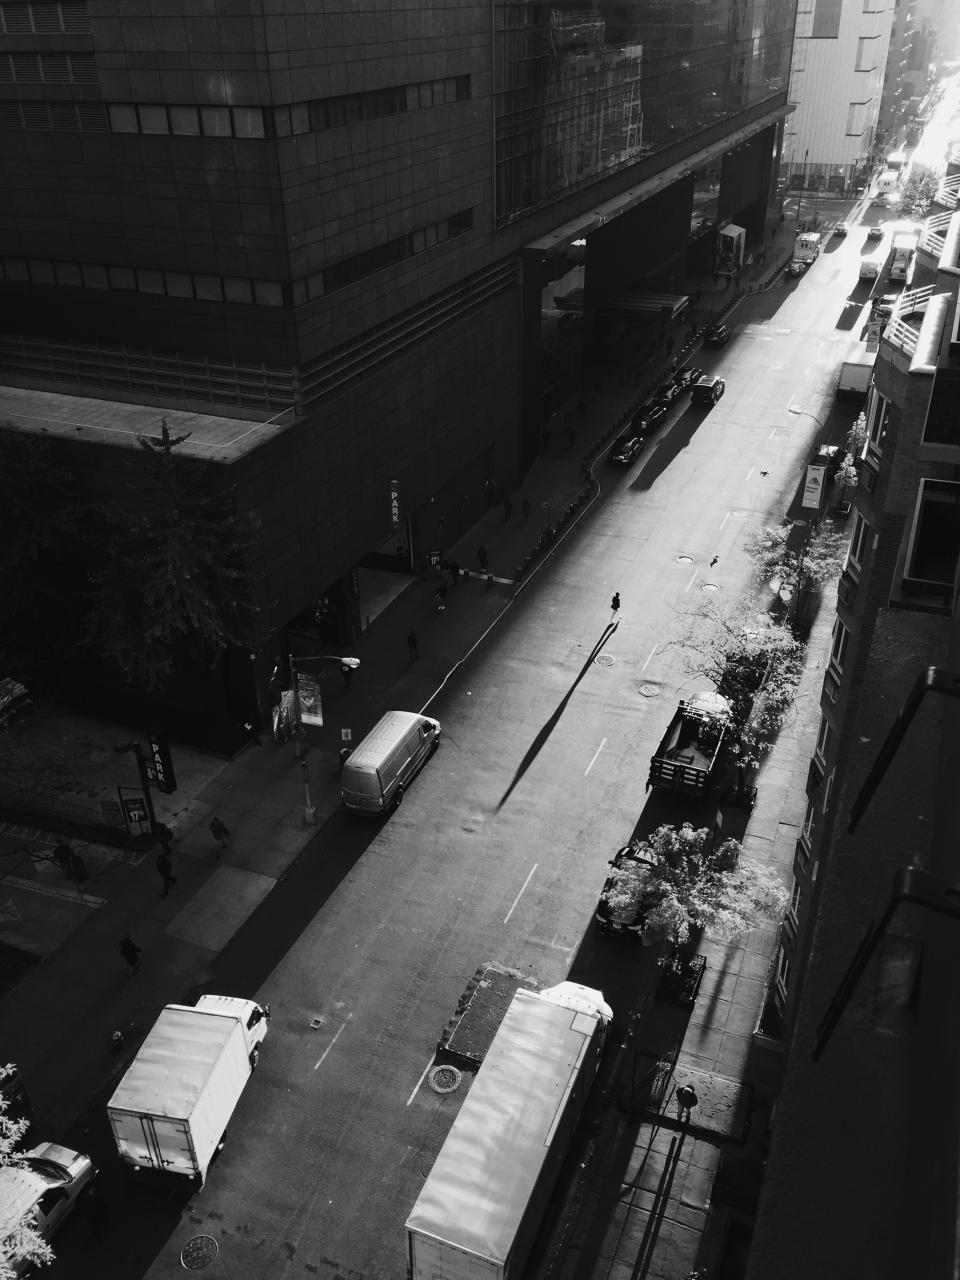 car vehicle transportation urban city monochrome black and white people building shadow trees establishment